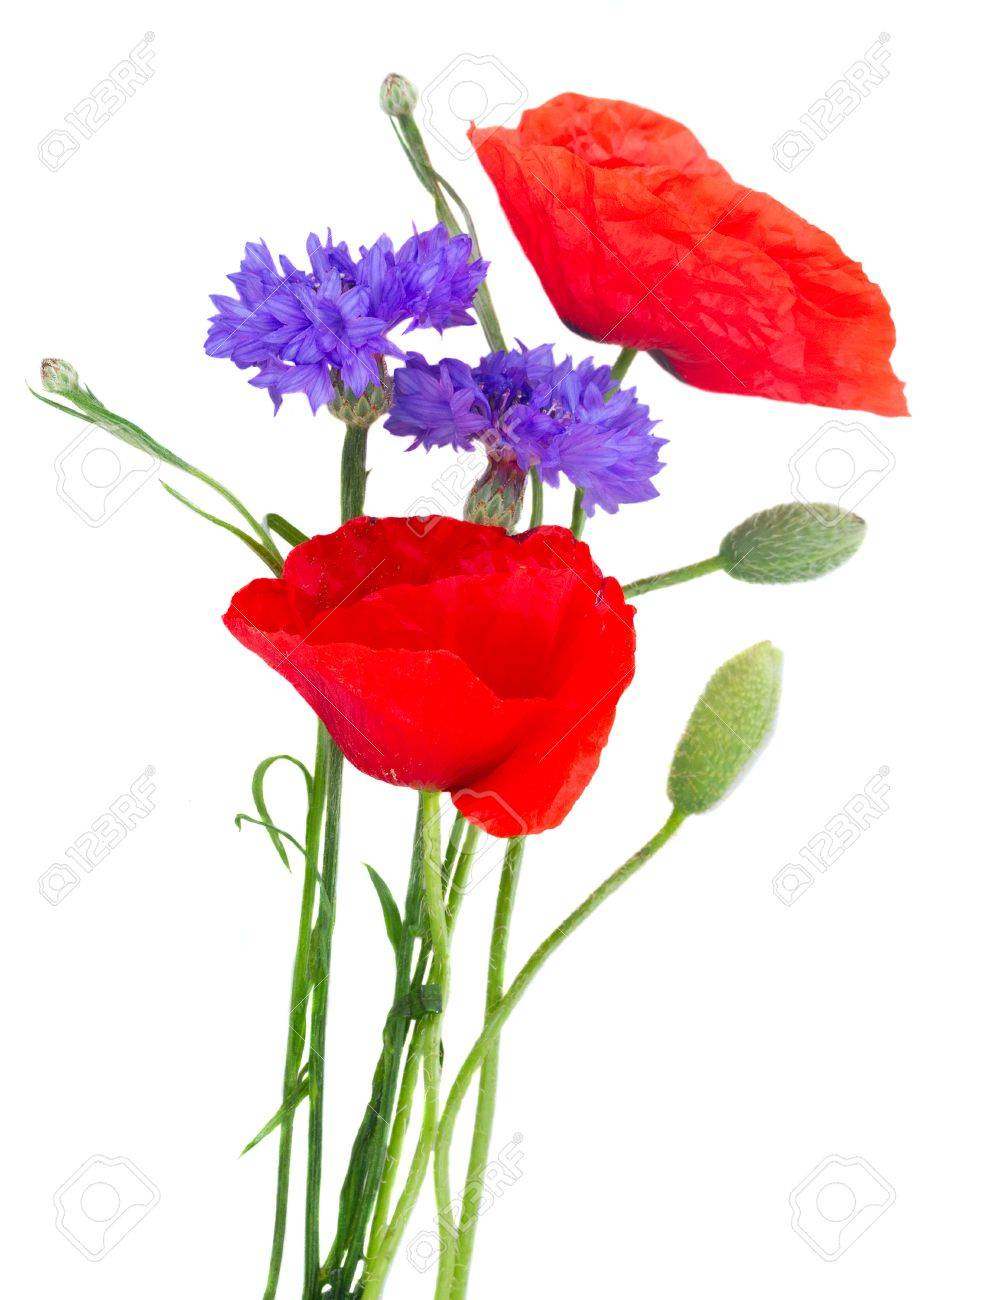 Poppy Red Flowers With Blue Cornflowers Green Buds Isolated Stock